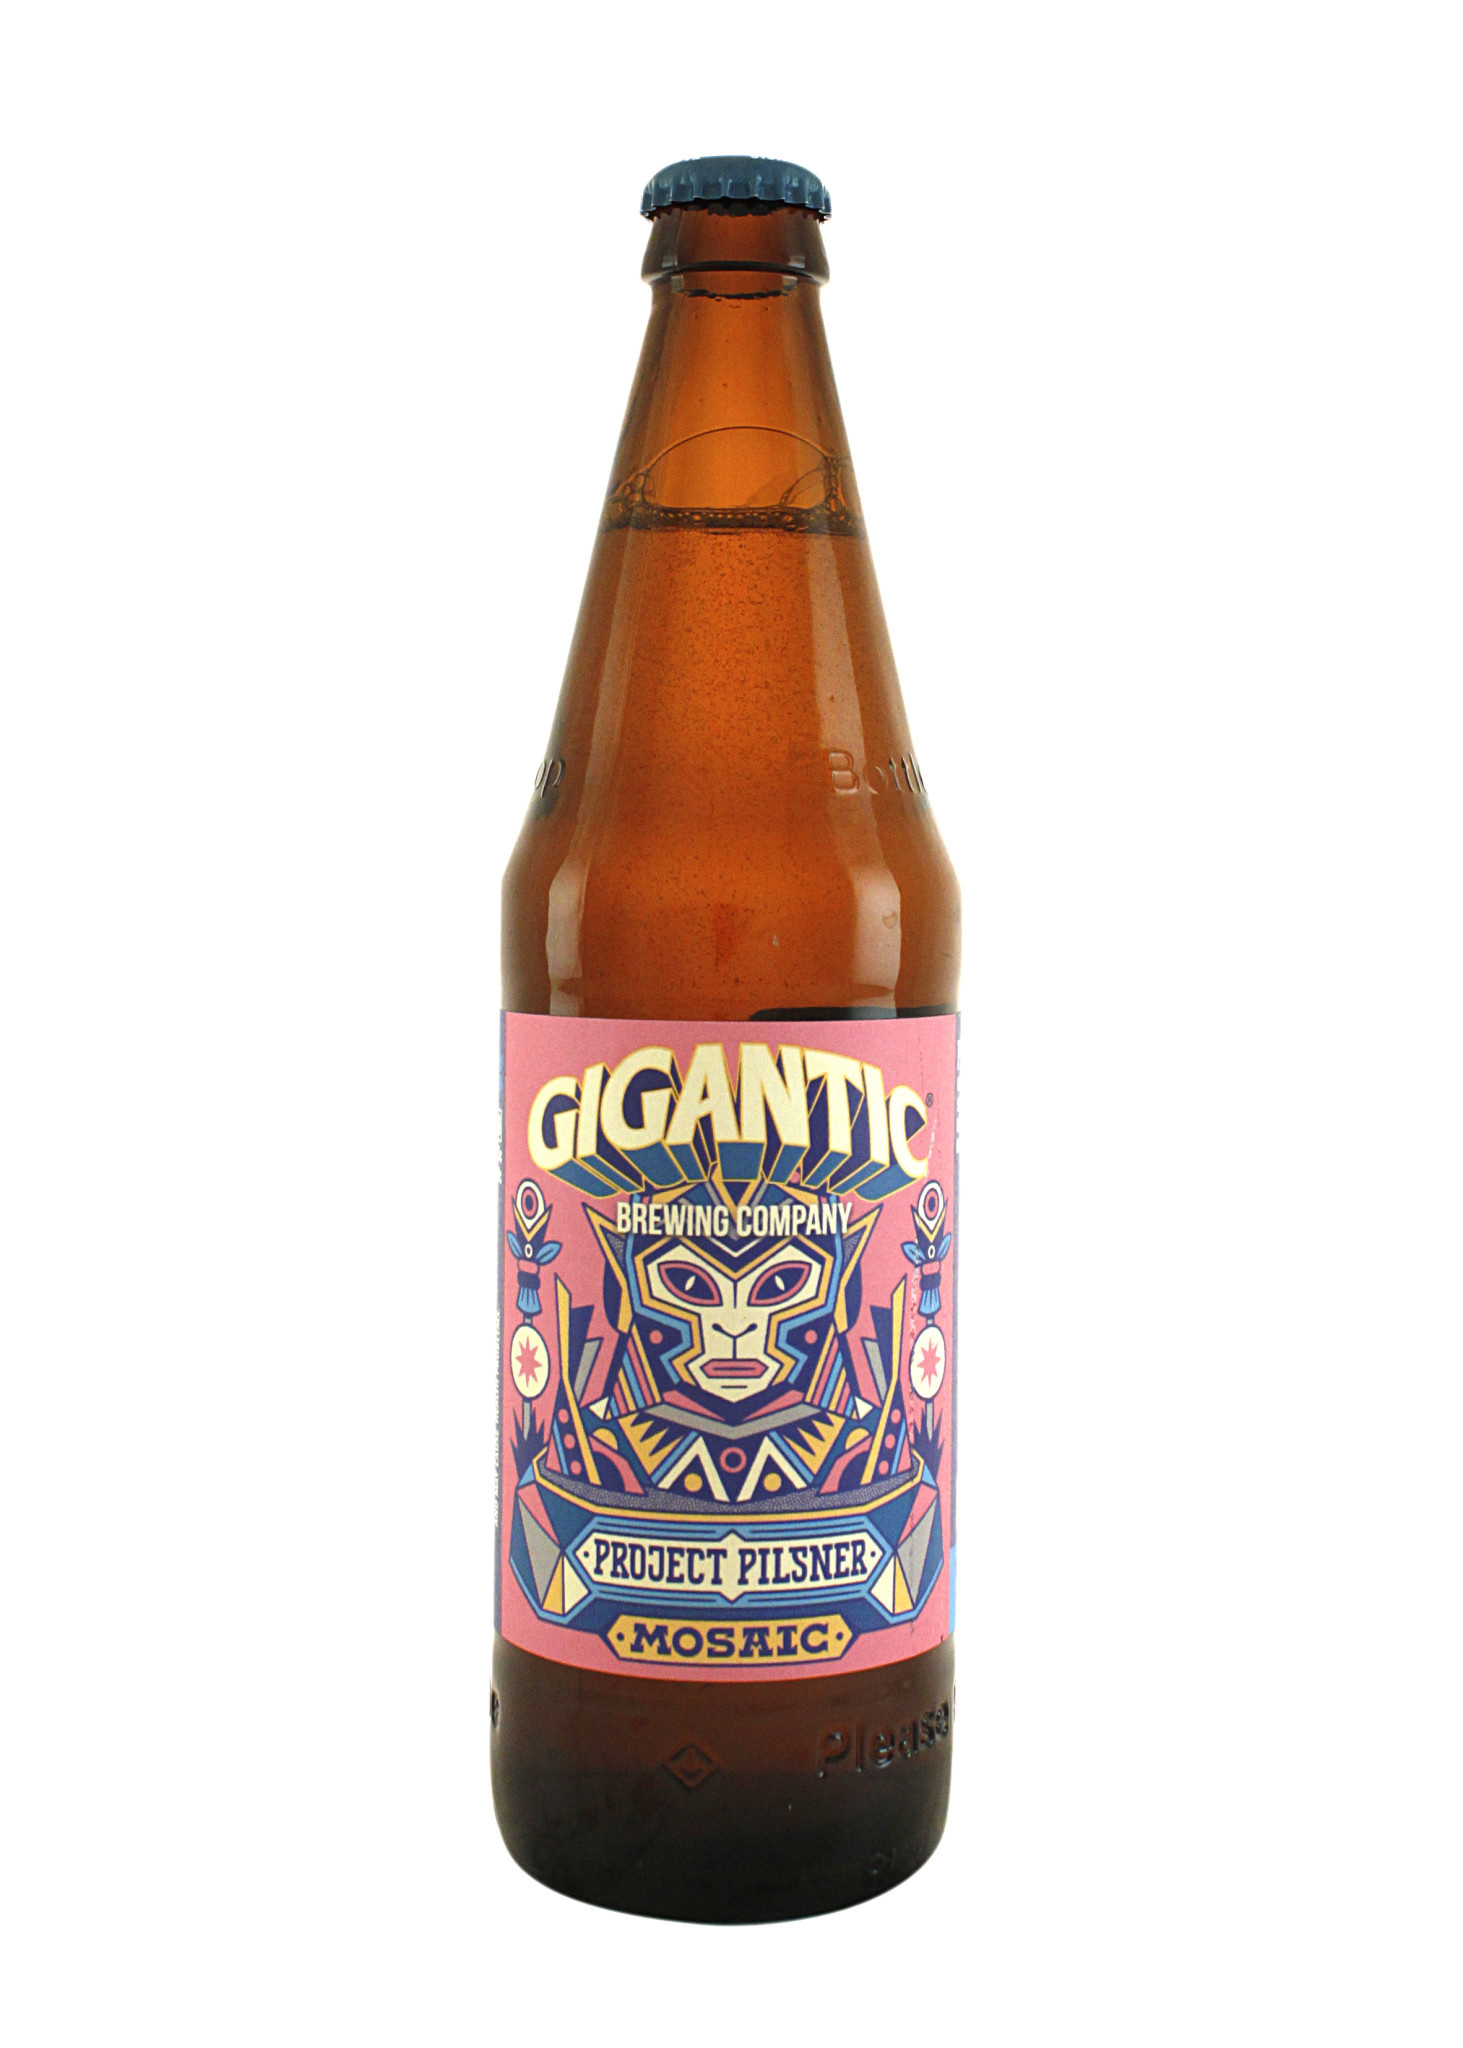 "Gigantic Brewing Co ""Project Pils: Mosaic"" Hoppy Pils 500ml bottle- Portland, Oregon"